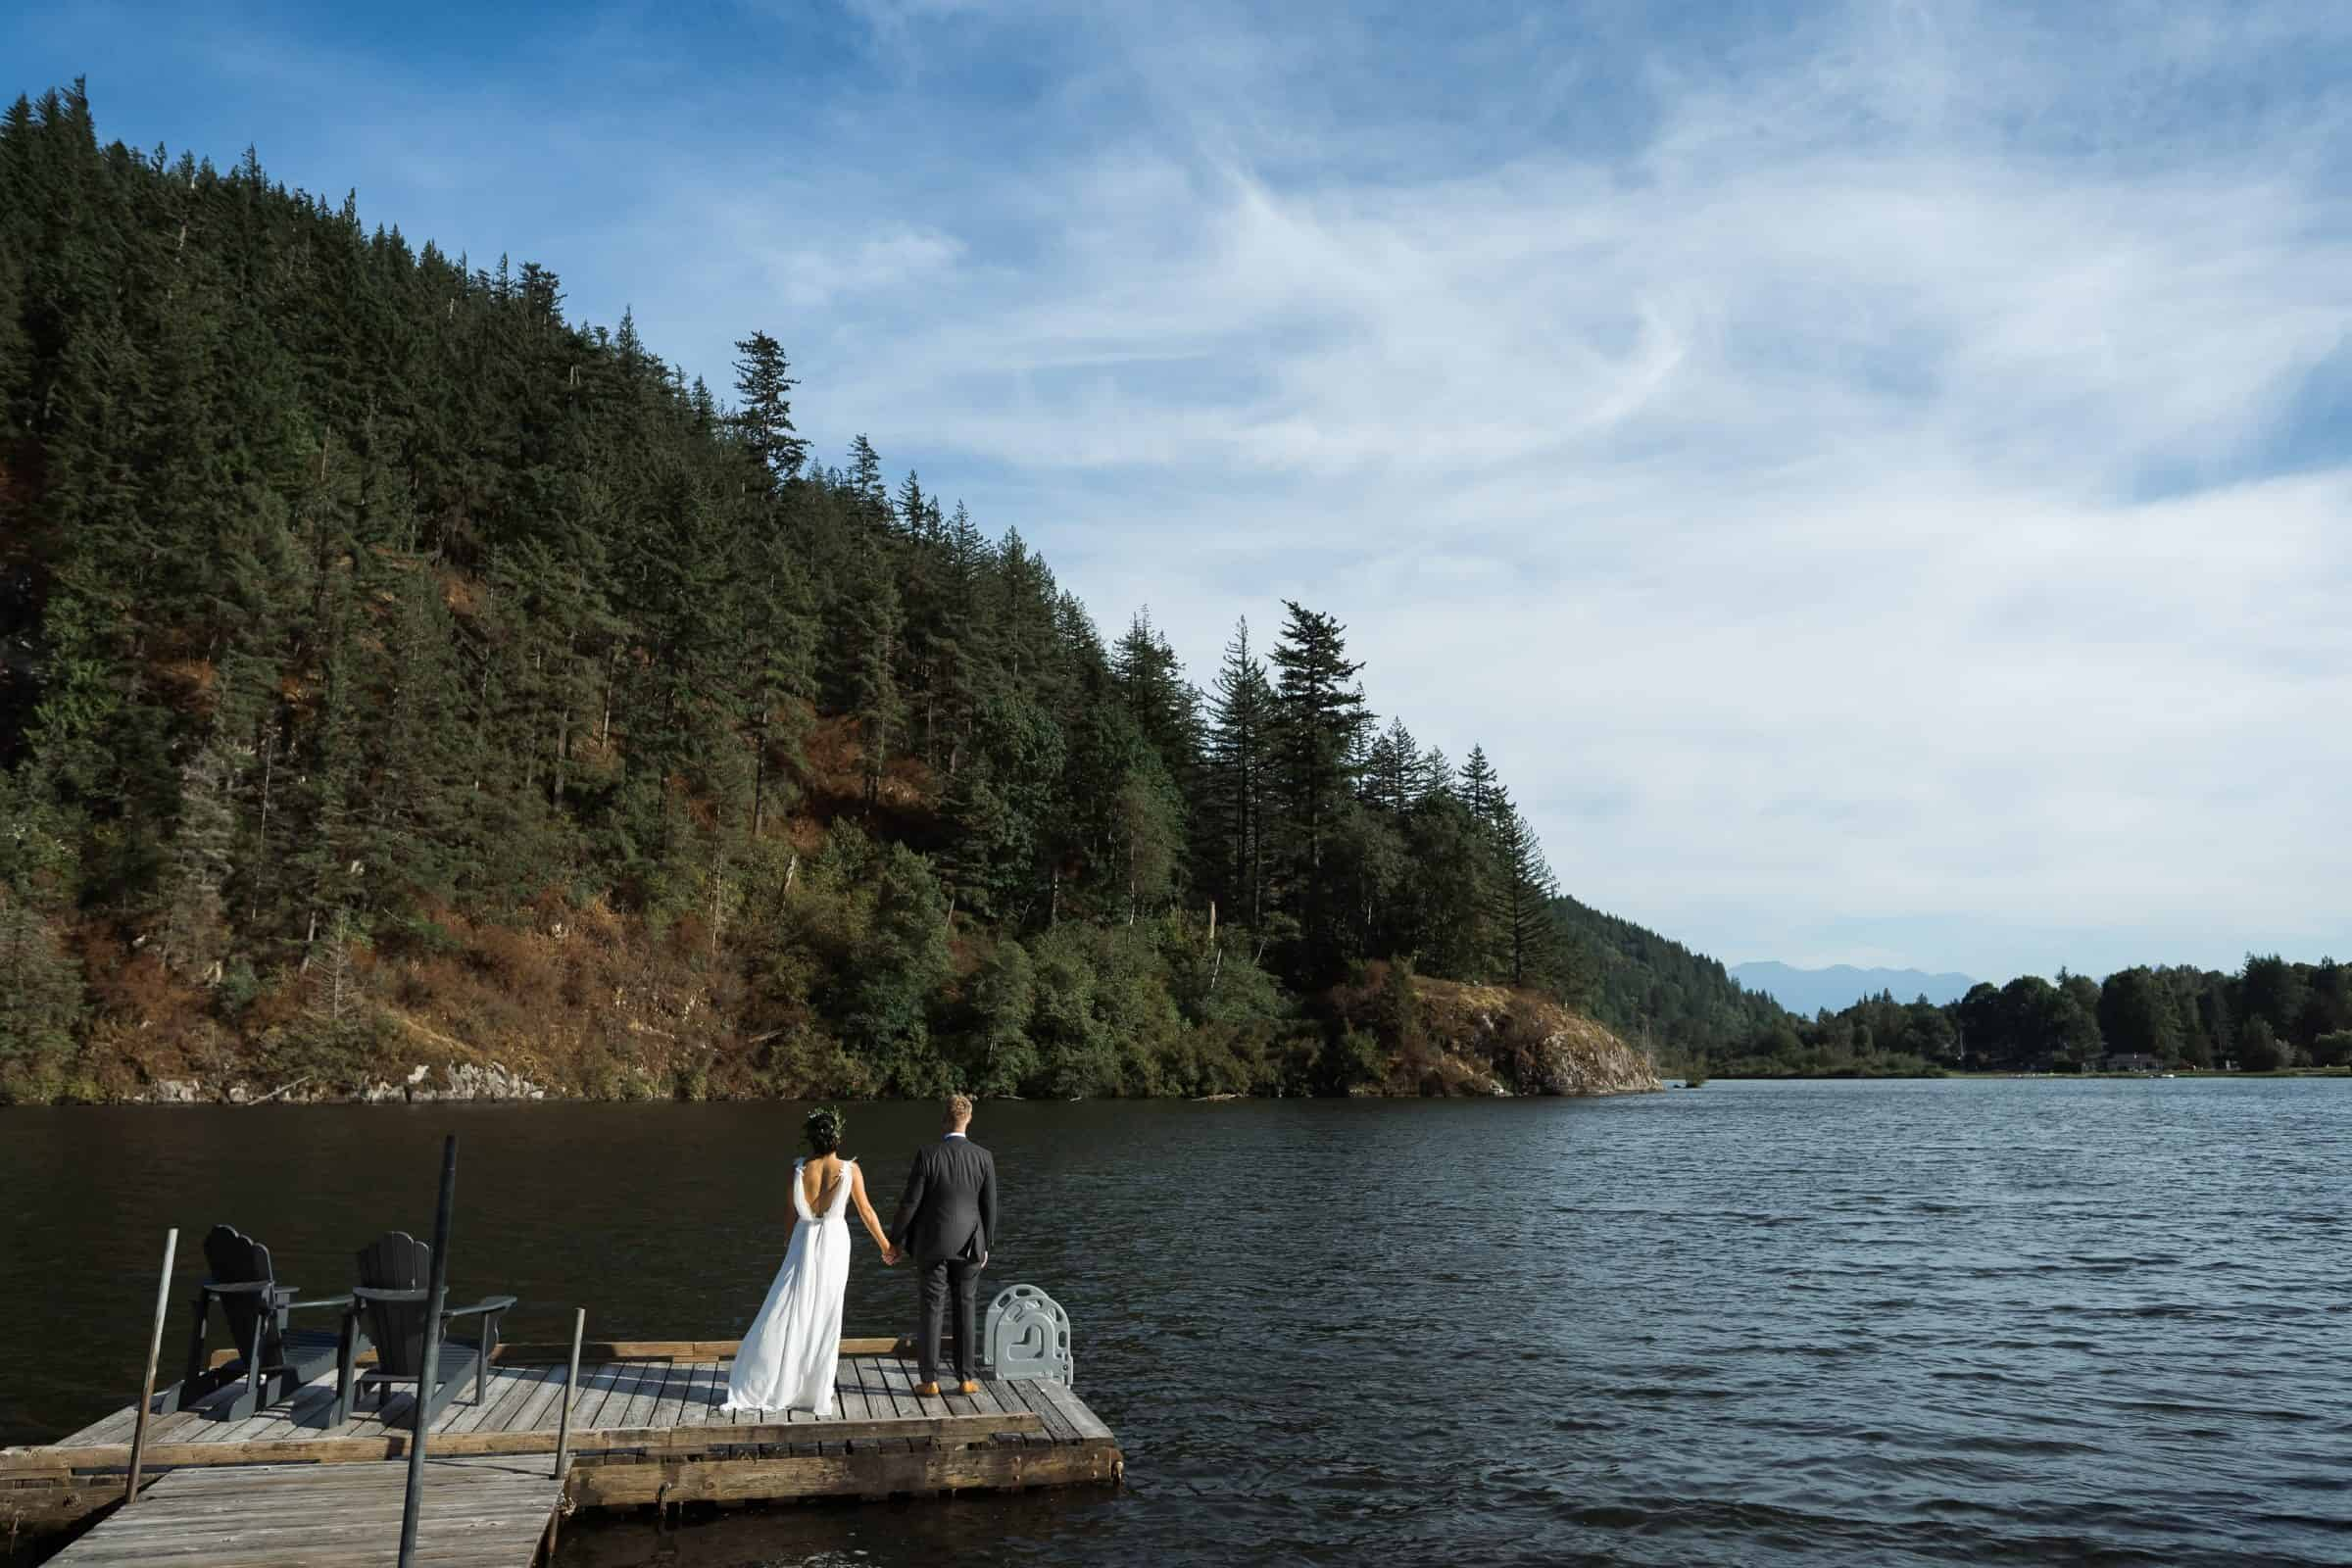 bride and groom standing on a dock by lake and mountains at sunset